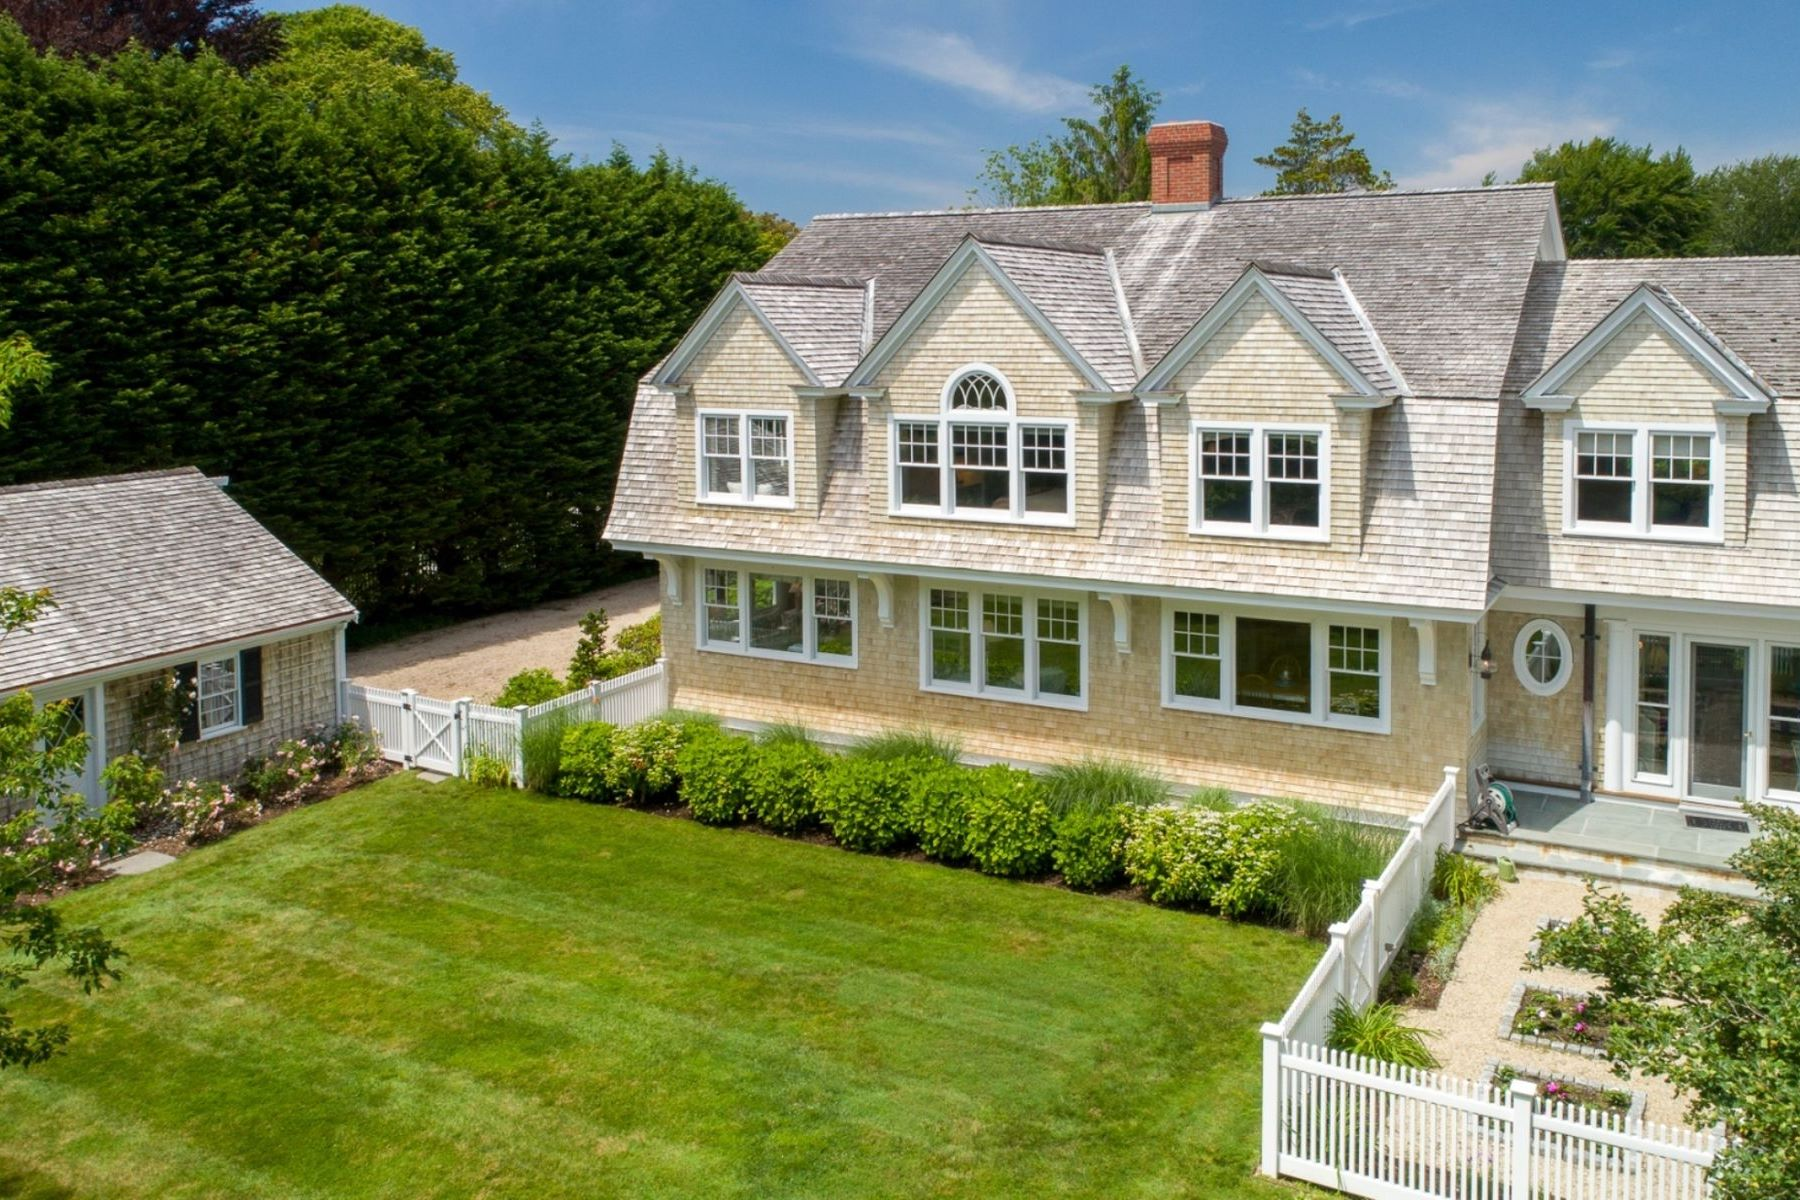 Single Family Homes for Sale at 5 Settlers Path Falmouth, Massachusetts 02540 United States